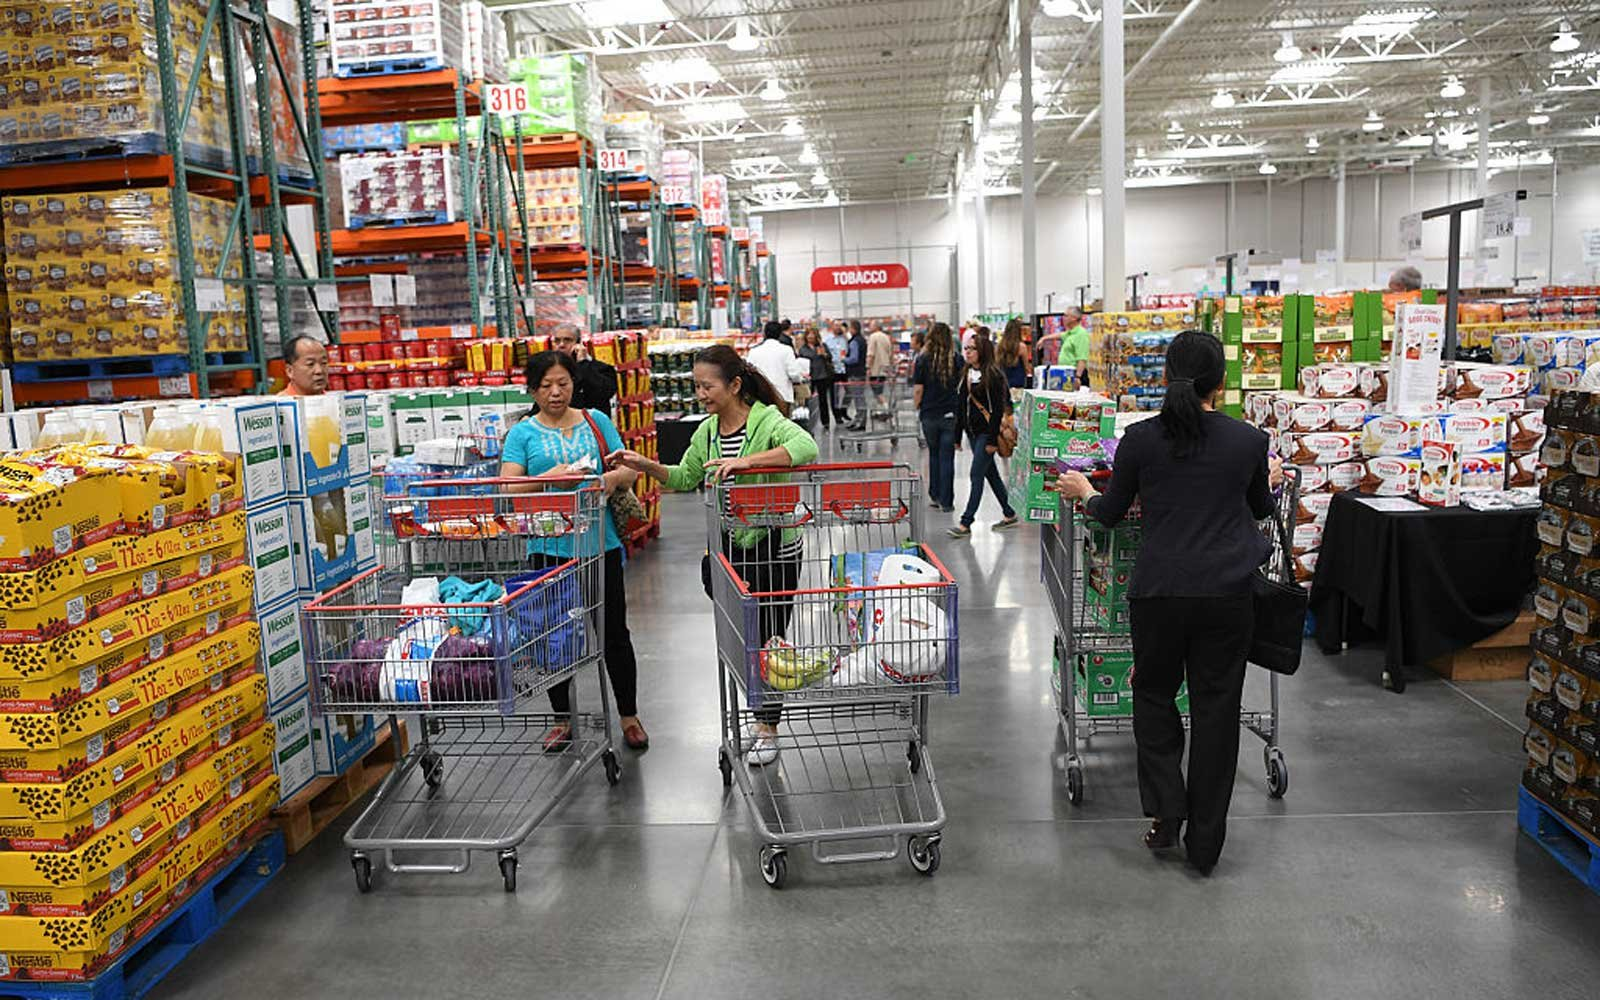 The 9 Best Costco Deals and Hacks, According to Employees